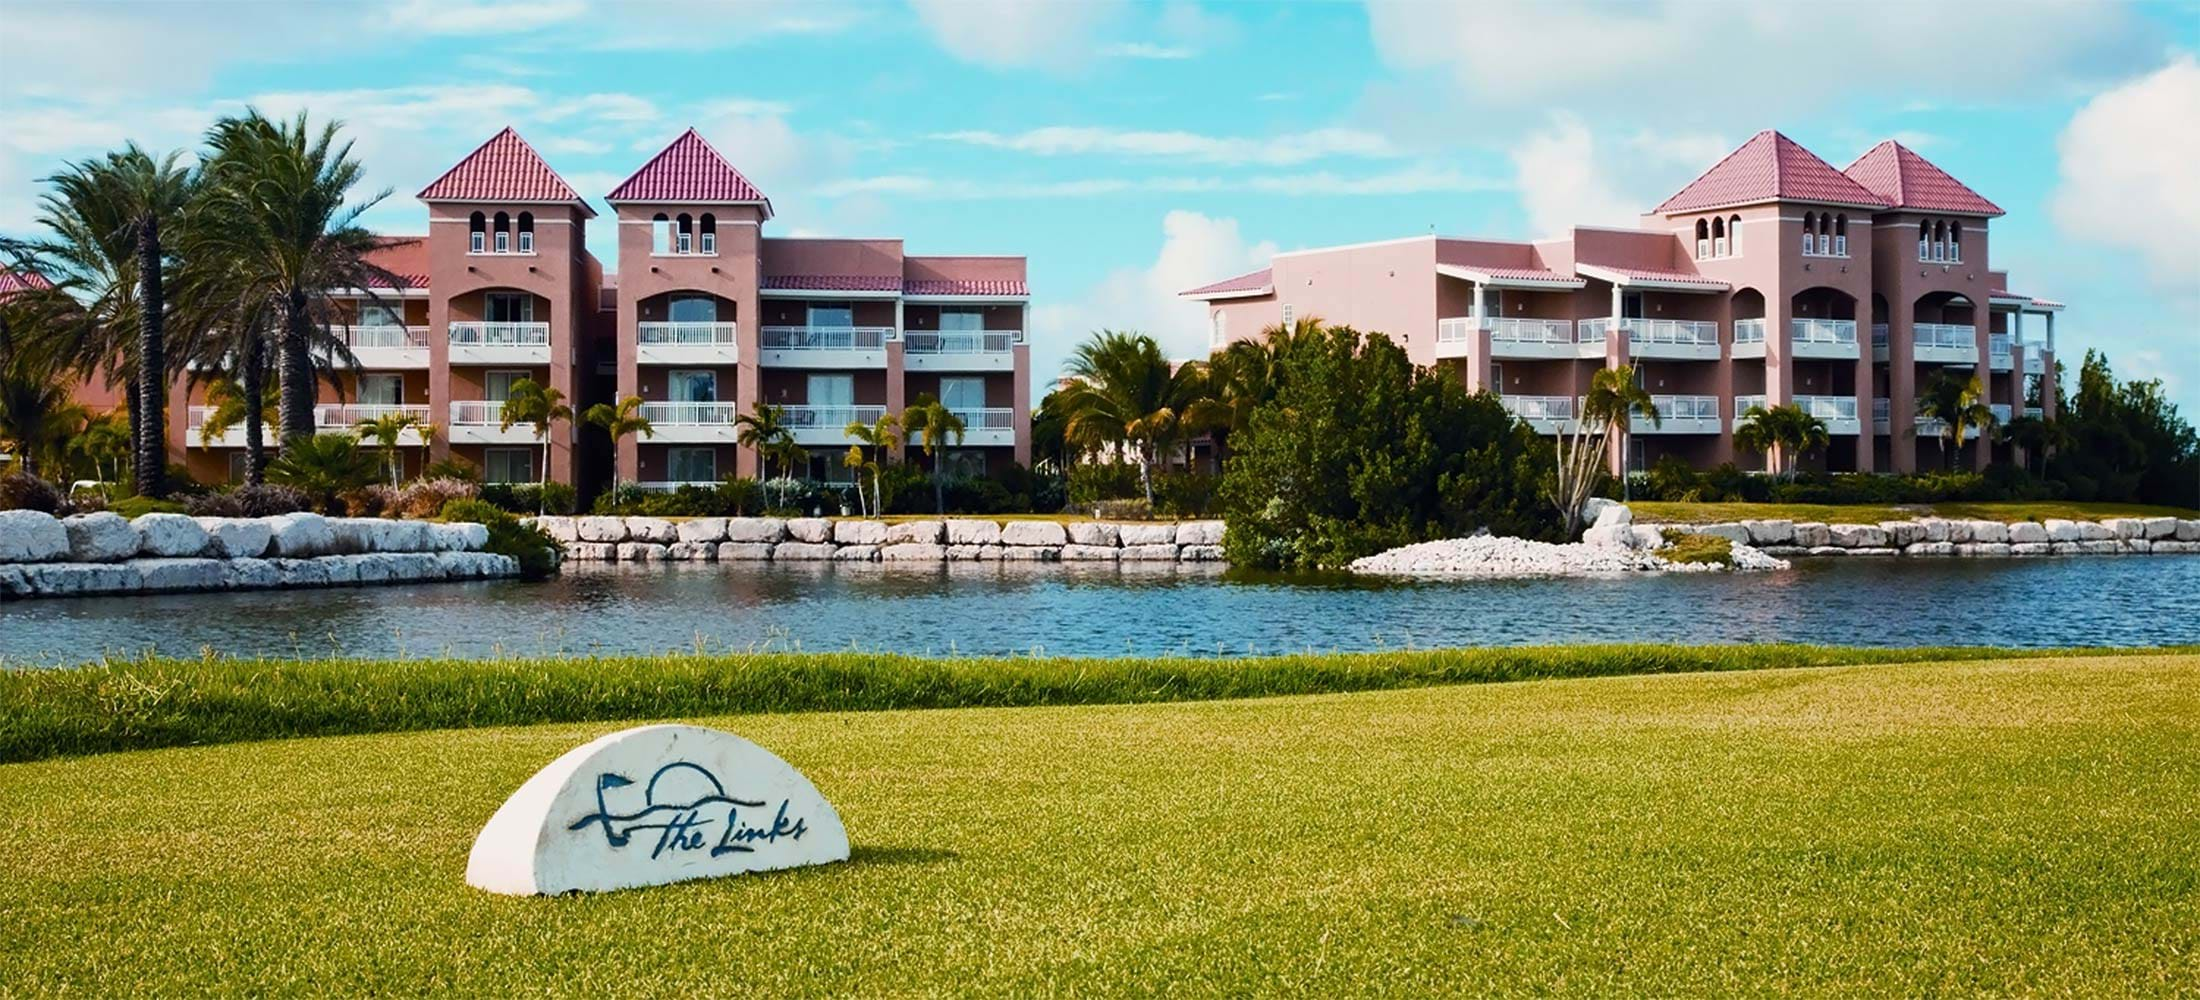 Divi village all inclusive villas aruba aruba v stindienspecialisten - Divi village all inclusive villas ...